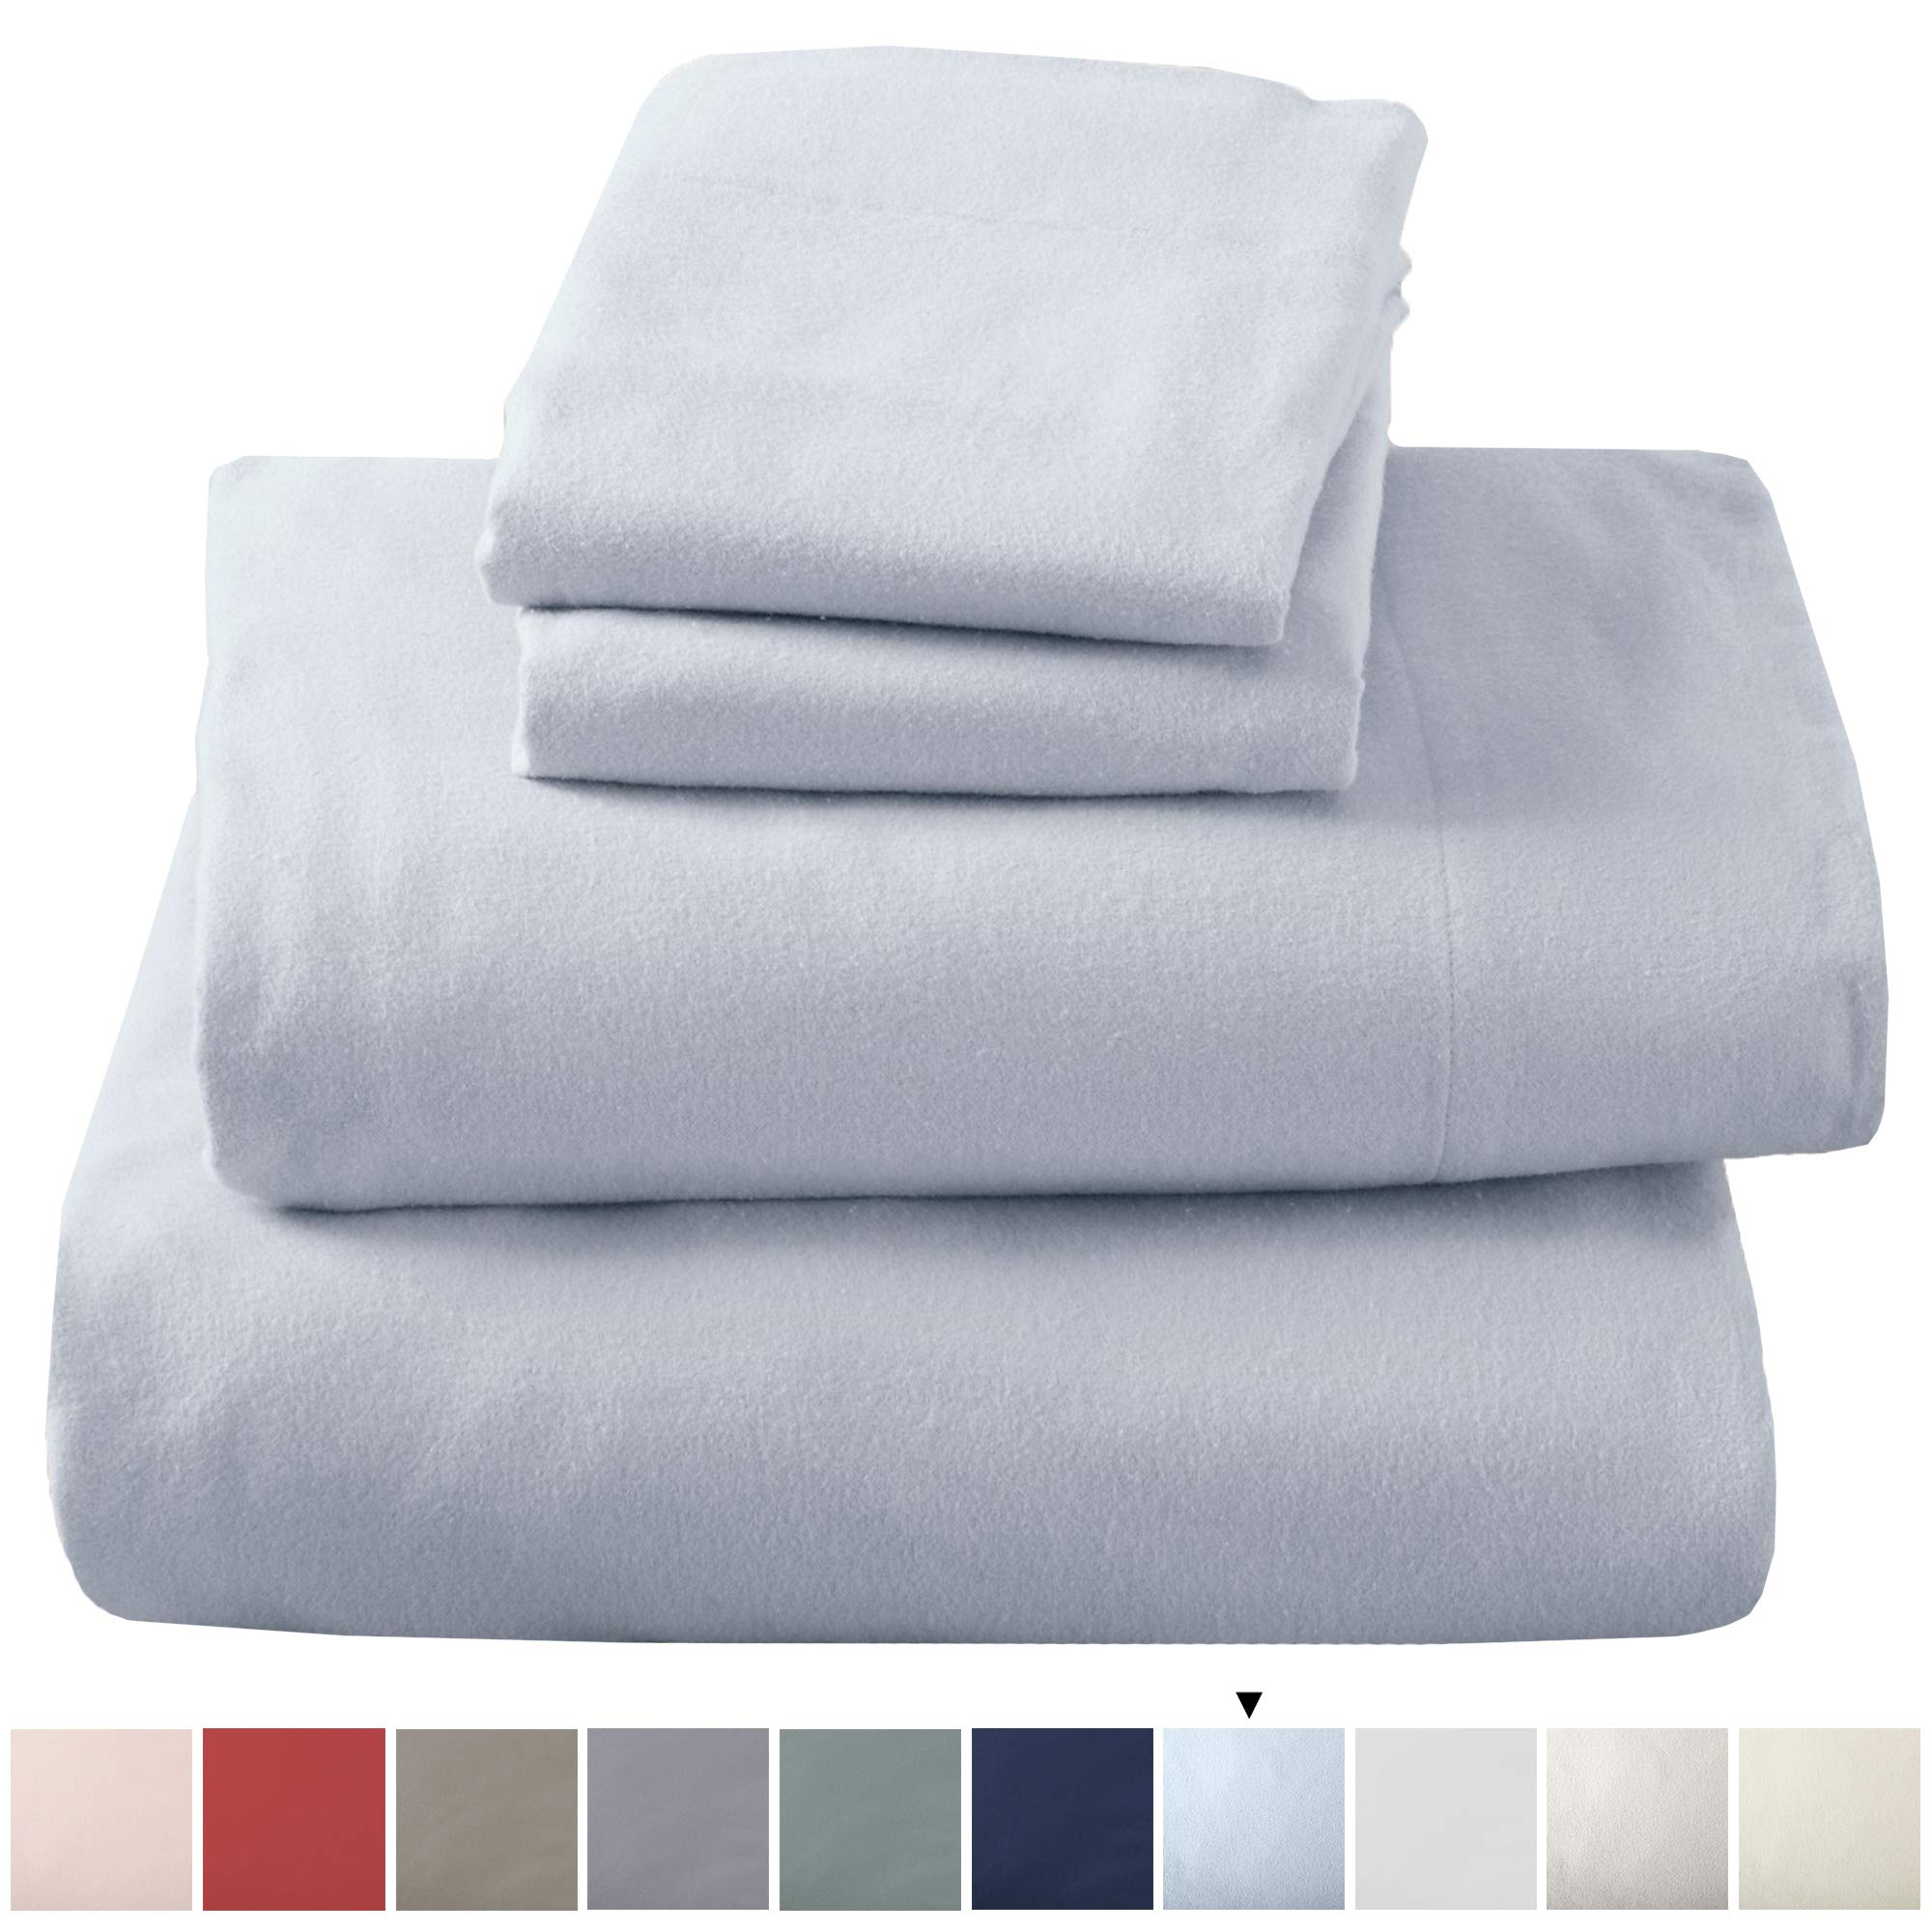 Great Bay Home Extra Soft 100% Turkish Cotton Flannel Sheet Set. Warm, Cozy, Lightweight, Luxury Winter Bed Sheets in Solid Colors. Nordic Collection (King, Pearl Blue)